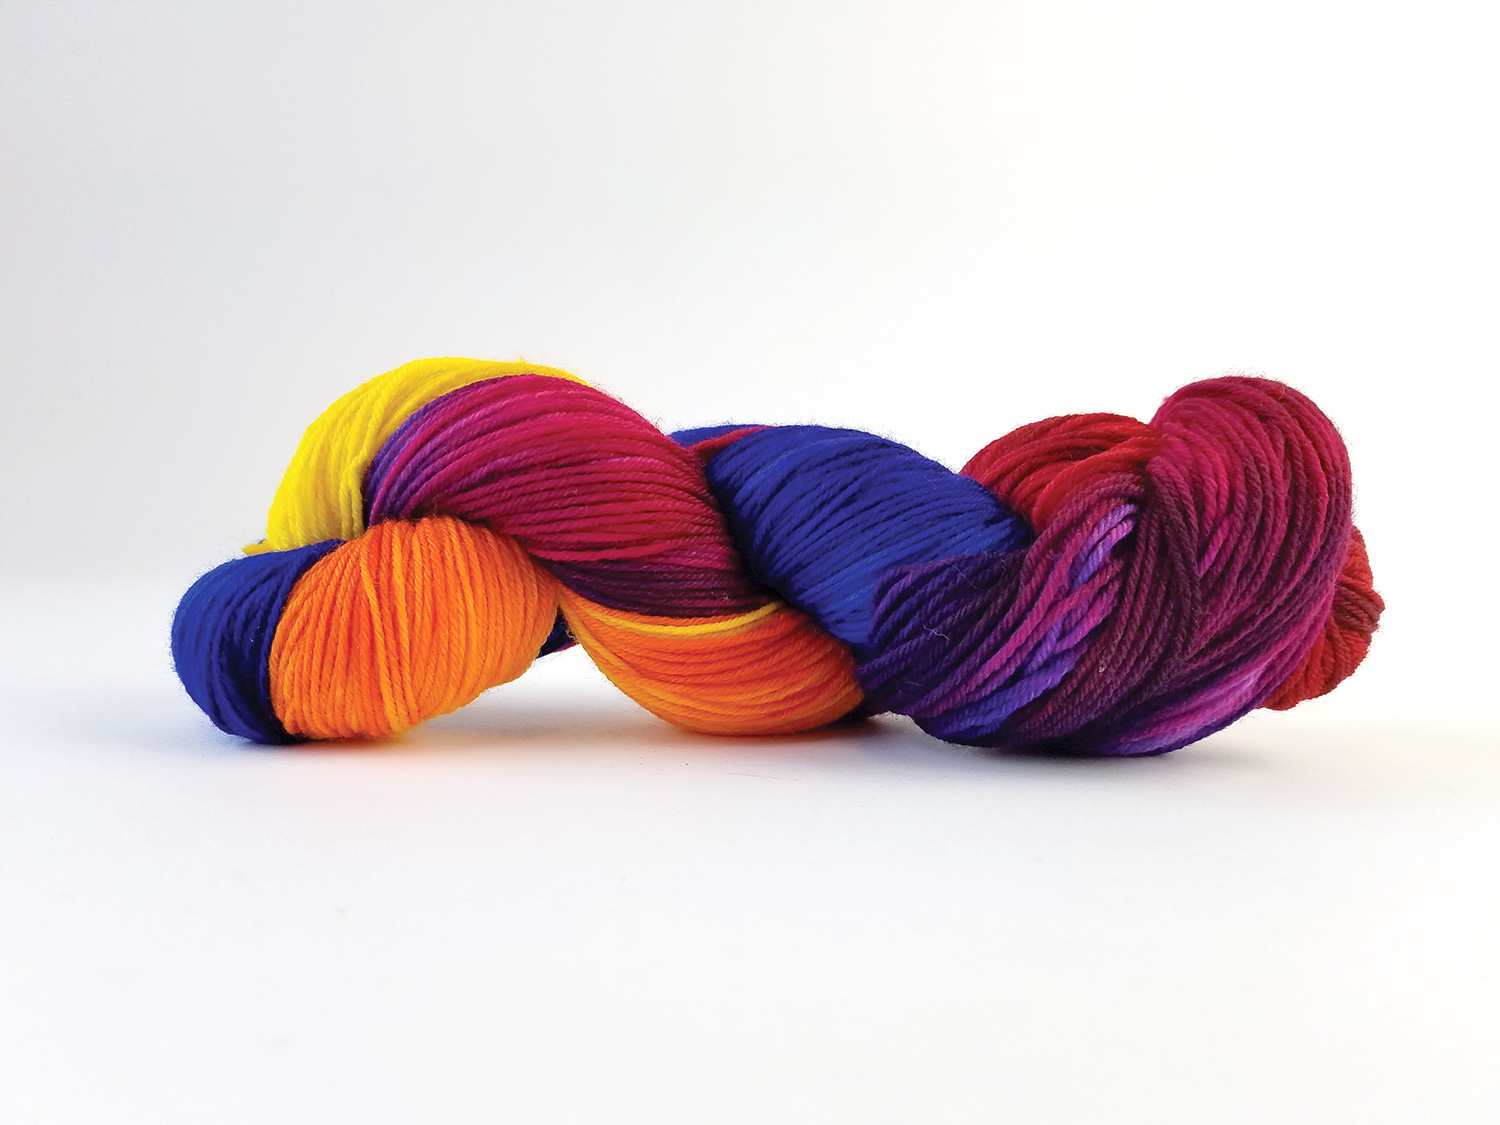 Dyed yarn by Tara Warburton from Makers' Mercantile - wearemakers.com